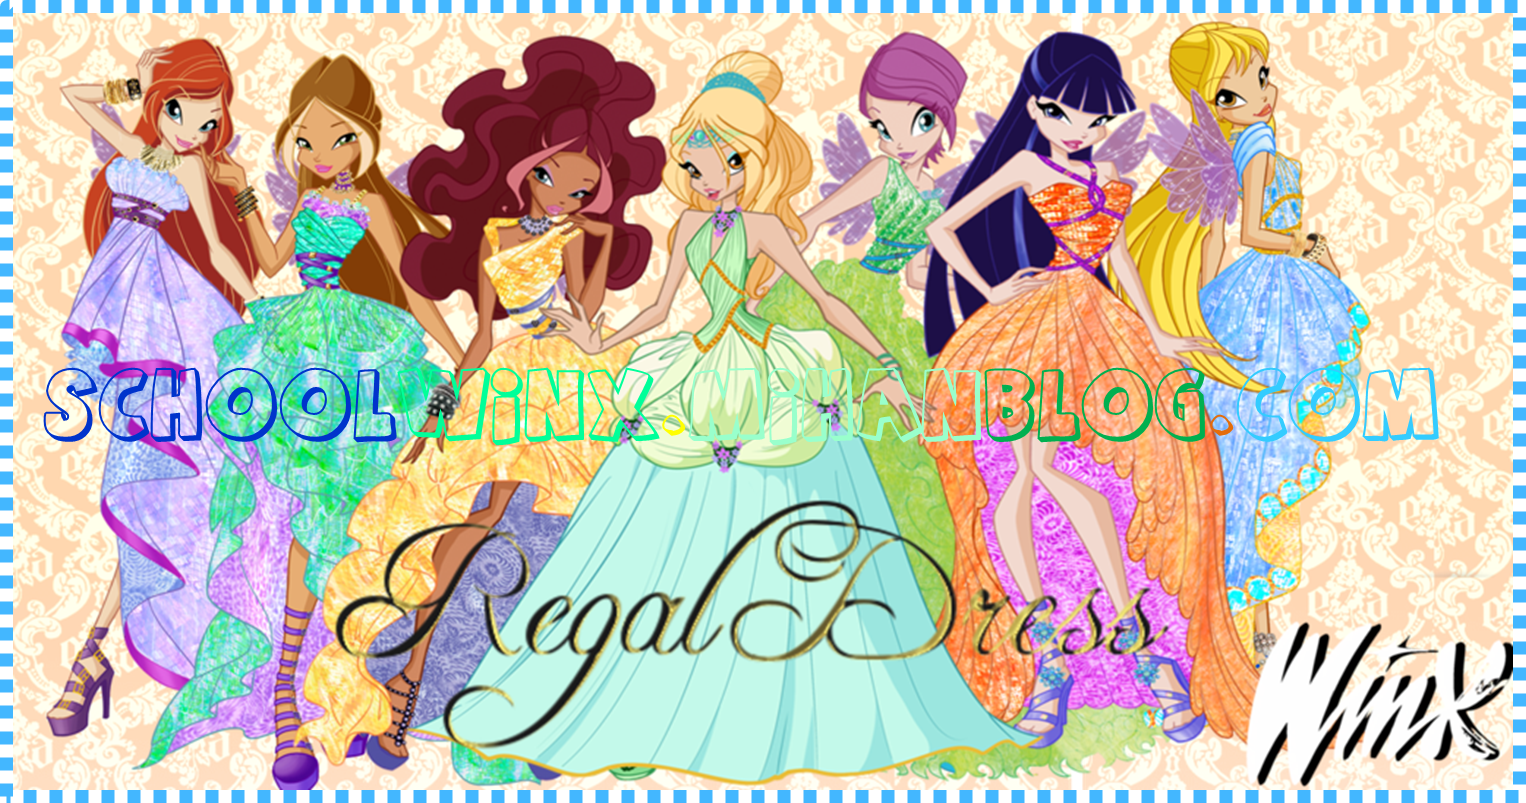 http://s6.picofile.com/file/8209585250/winx_club_regal_dress_wallpaper_by_wizplace_d7xzc7f.png